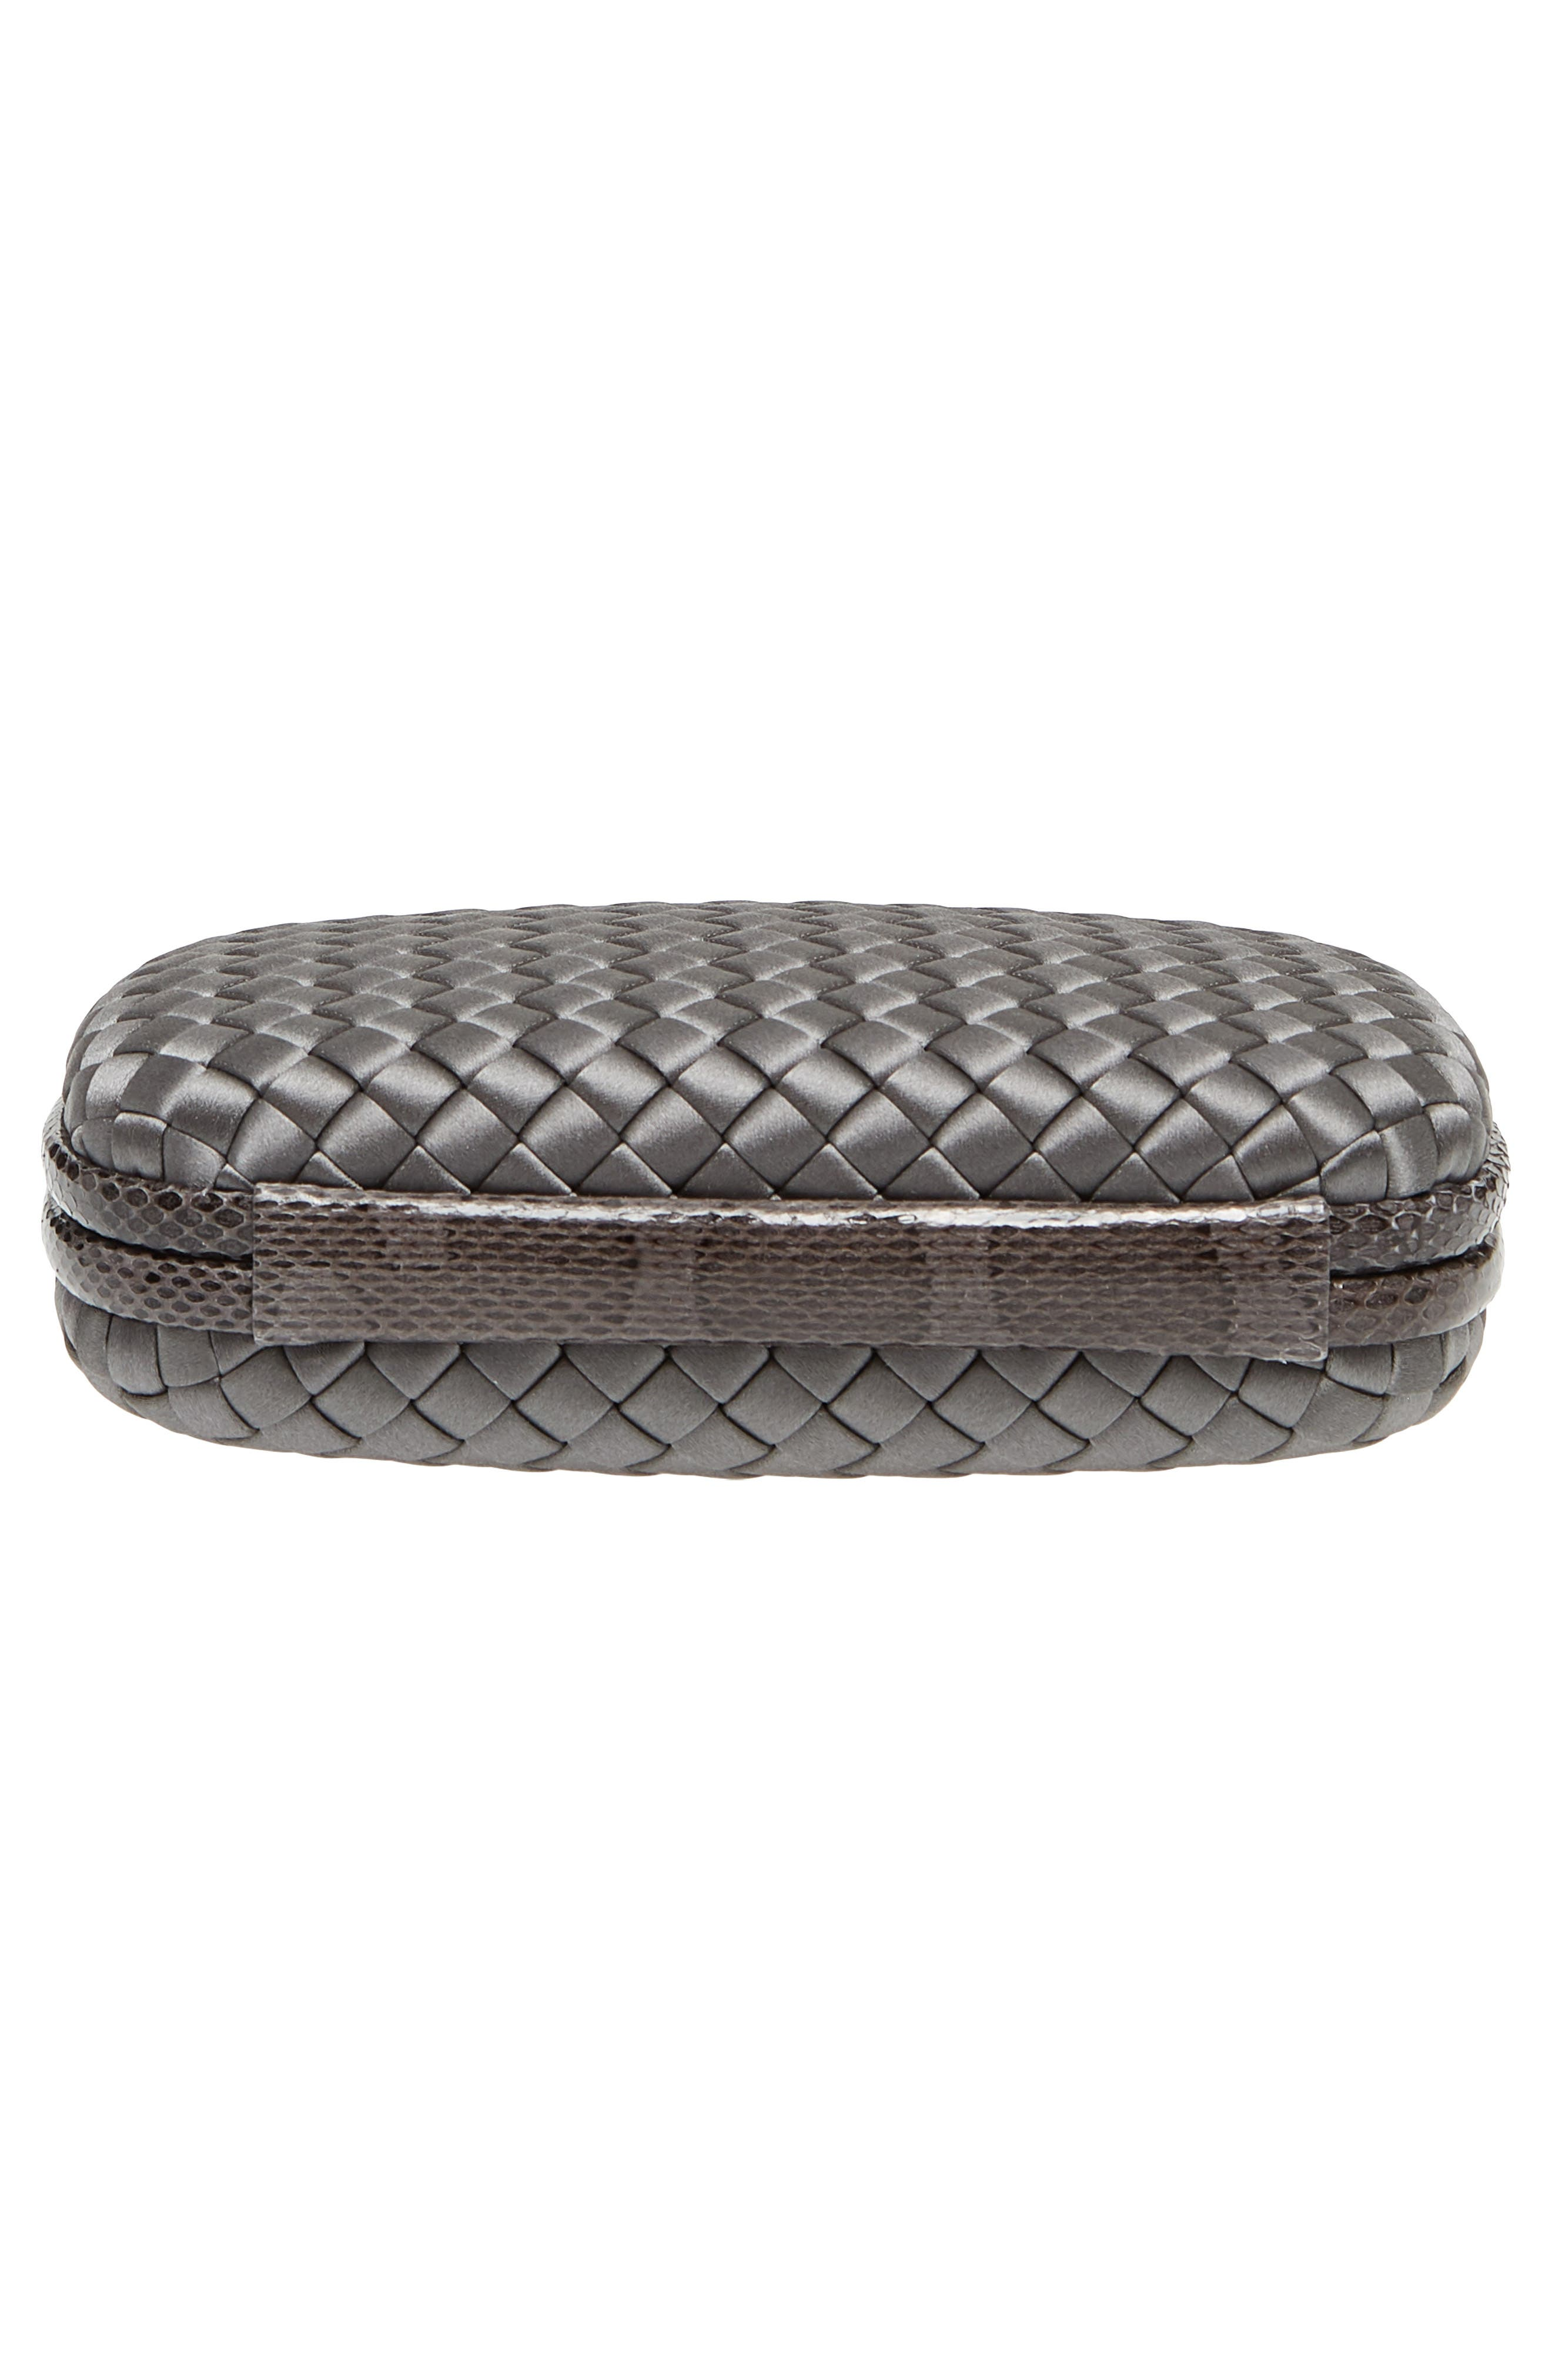 New Satin & Genuine Snakeskin Knot Clutch,                             Alternate thumbnail 6, color,                             8522- NEW LIGHT GREY